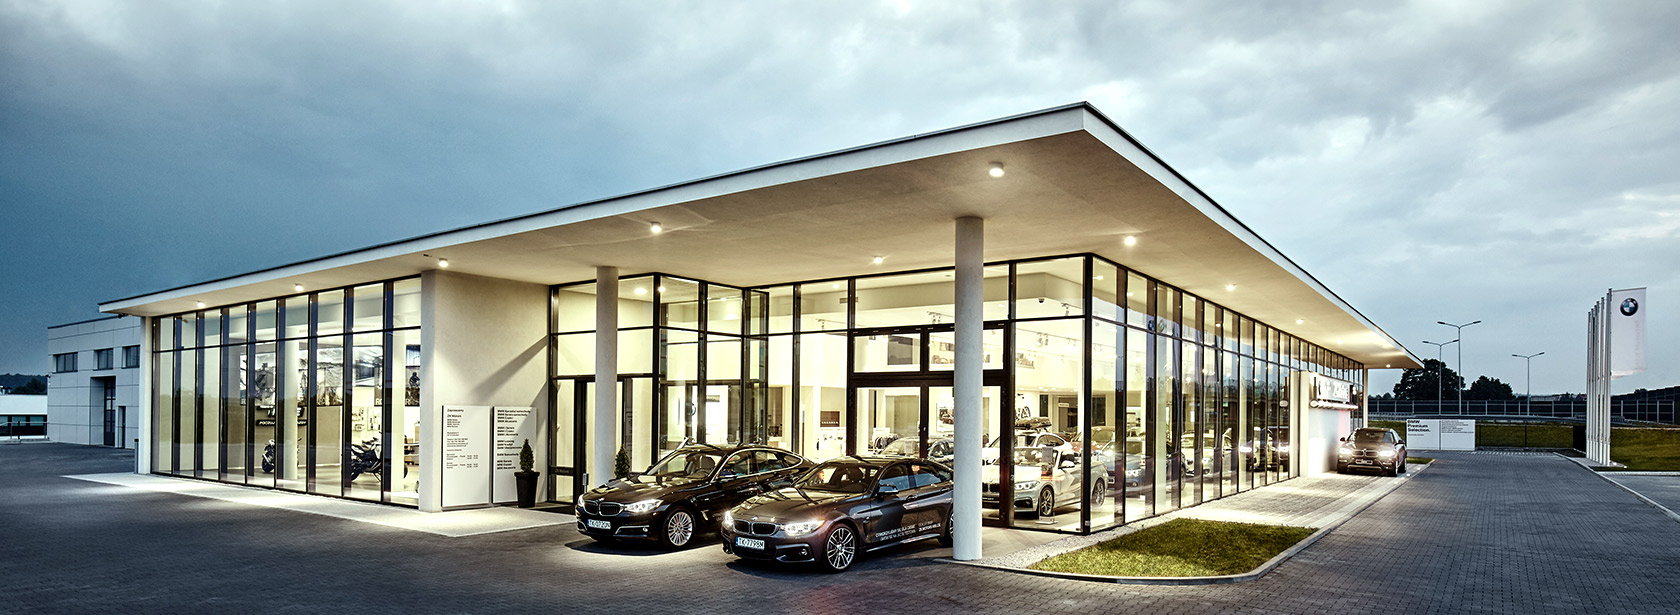 Salon Dealer BMW ZK Motors.